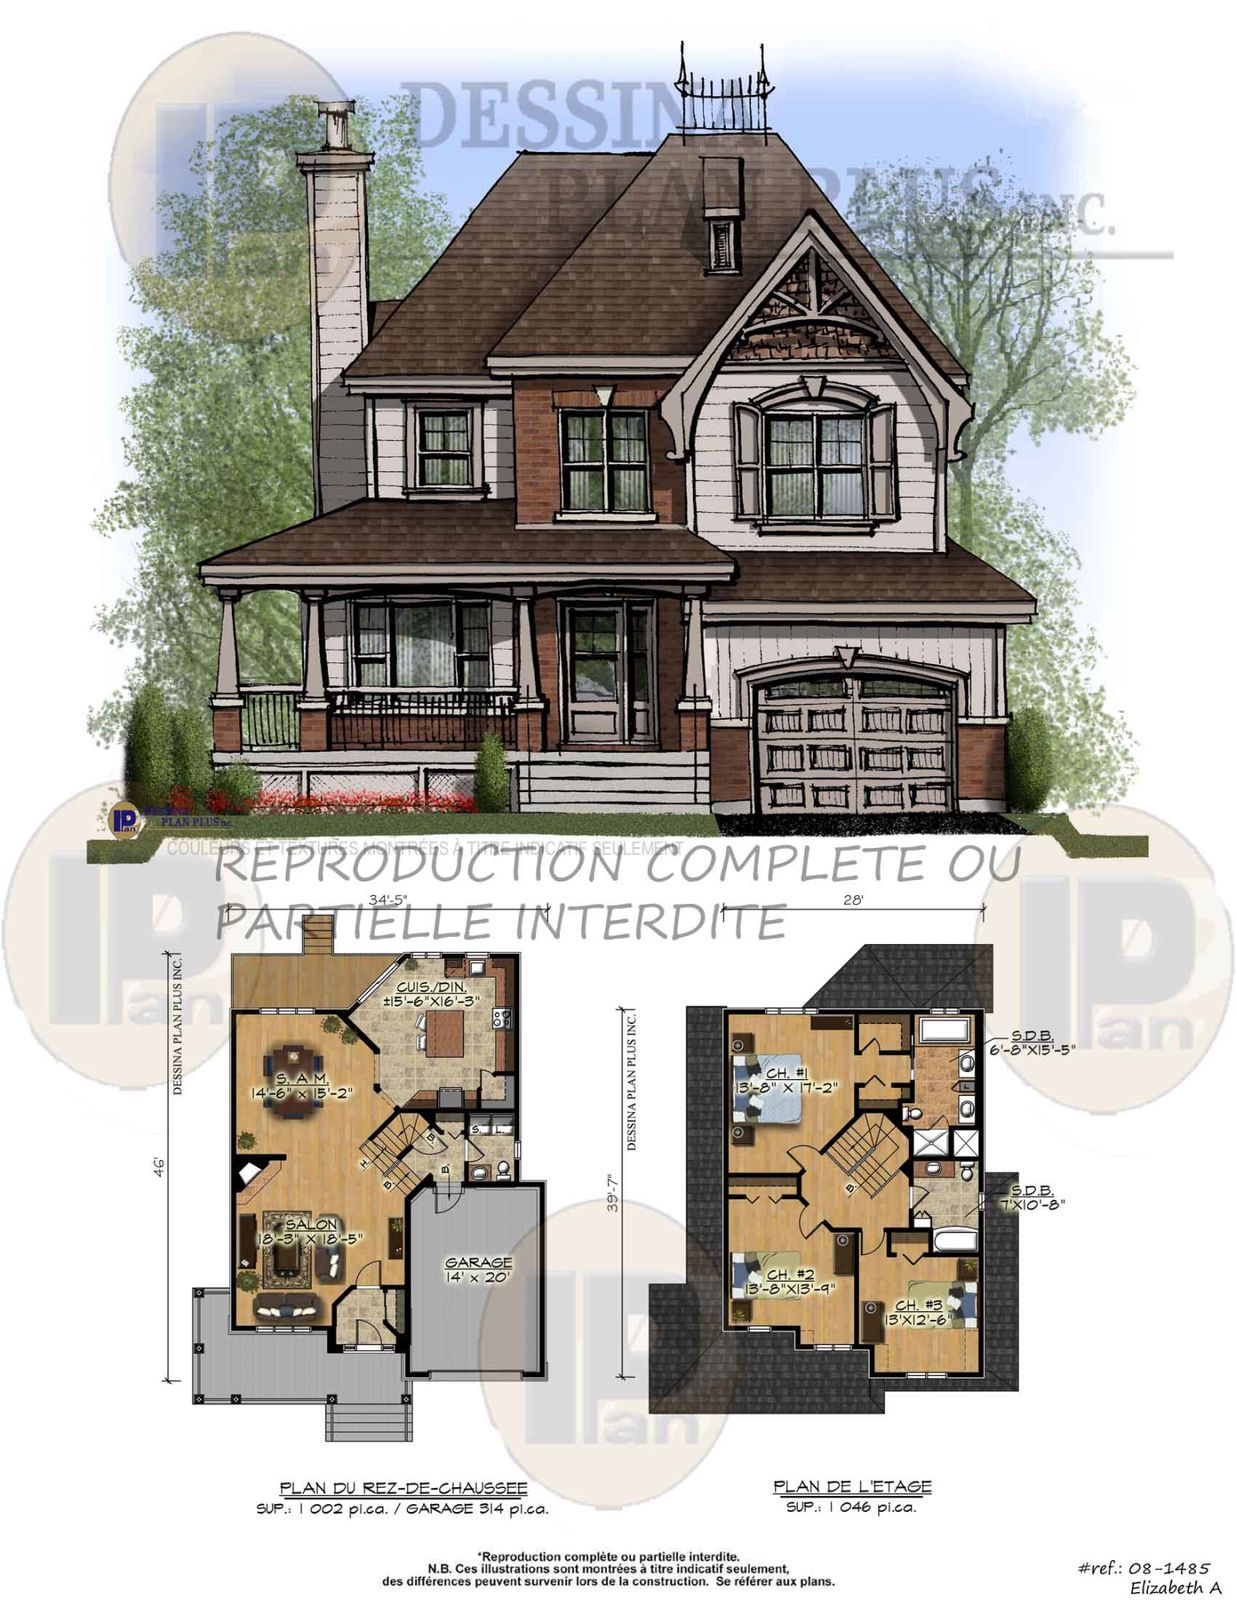 Plans vendre cottage dessina plan plus inc for Plan d agrandissement de maison